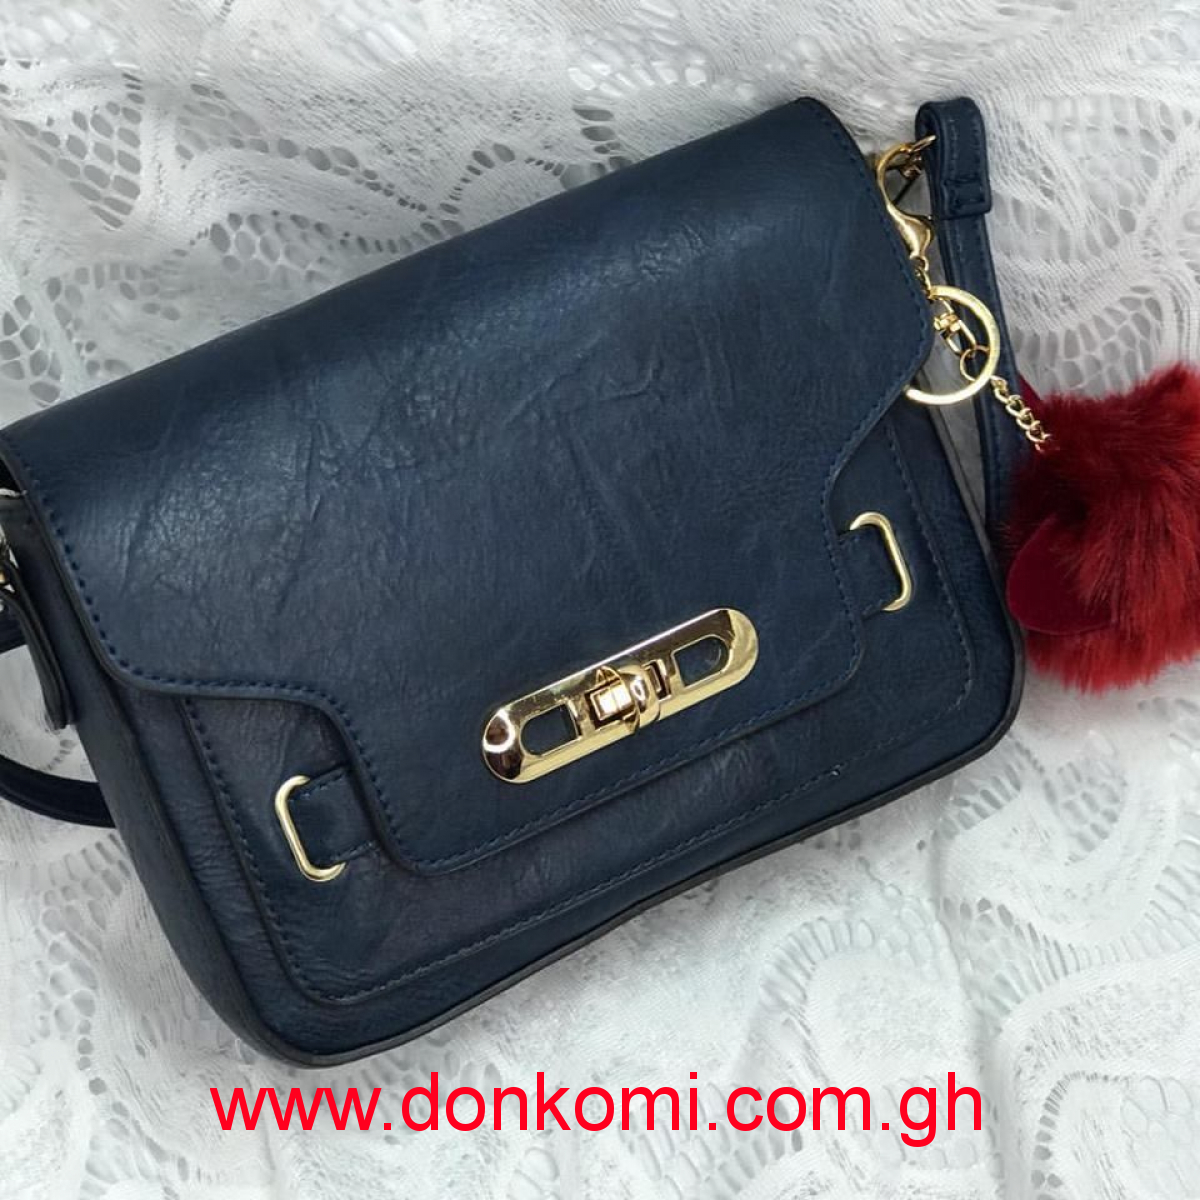 CUTE NAVY BLUE LEATHER BAG